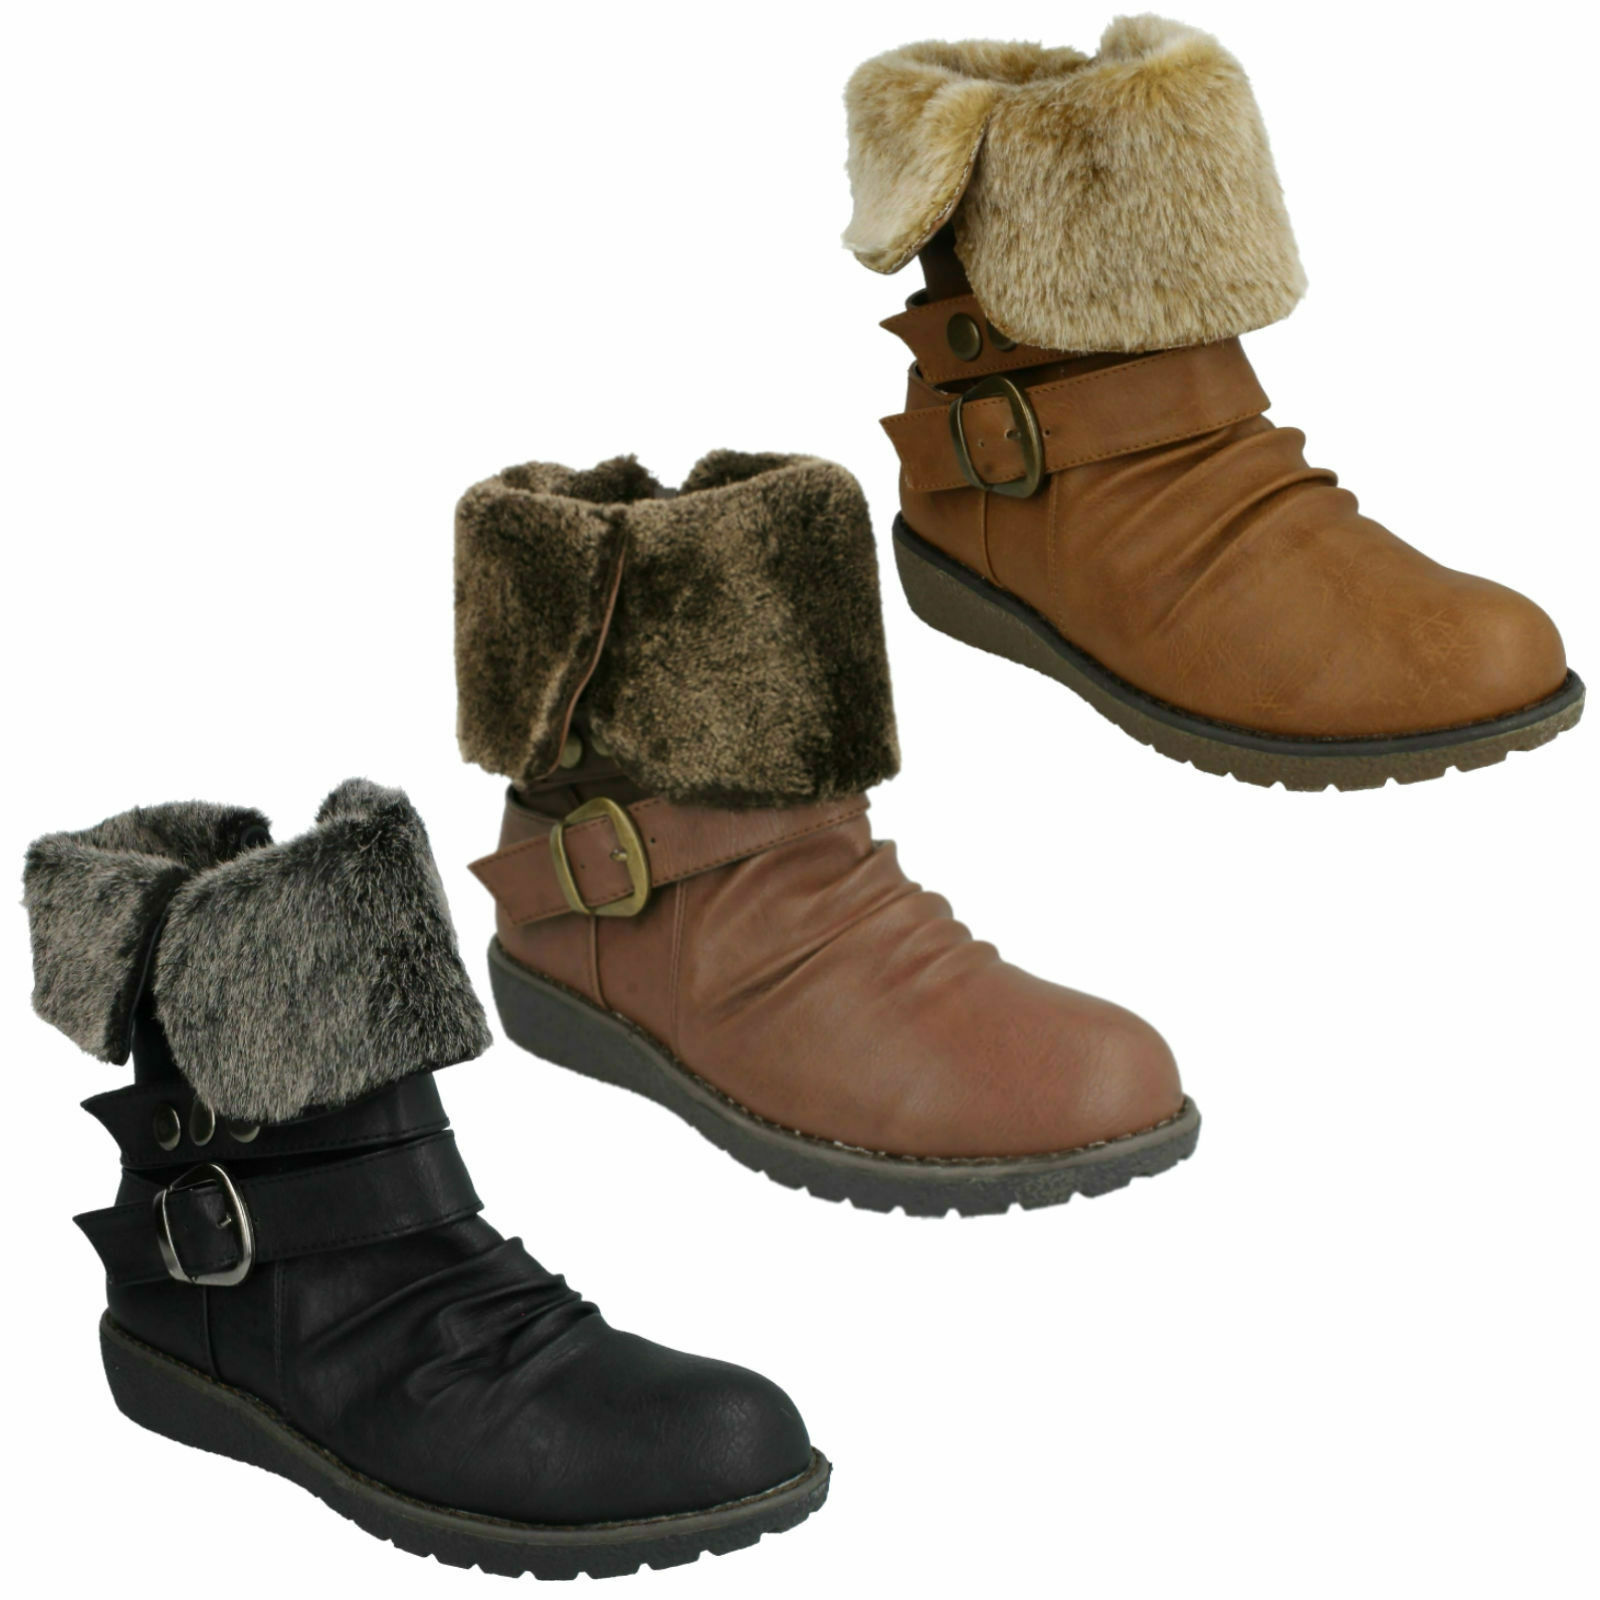 WOMENS LADIES LOW WEDGE ZIP UP CASUAL FUR FOLDOVER ANKLE BOOTS SPOT ON F50274